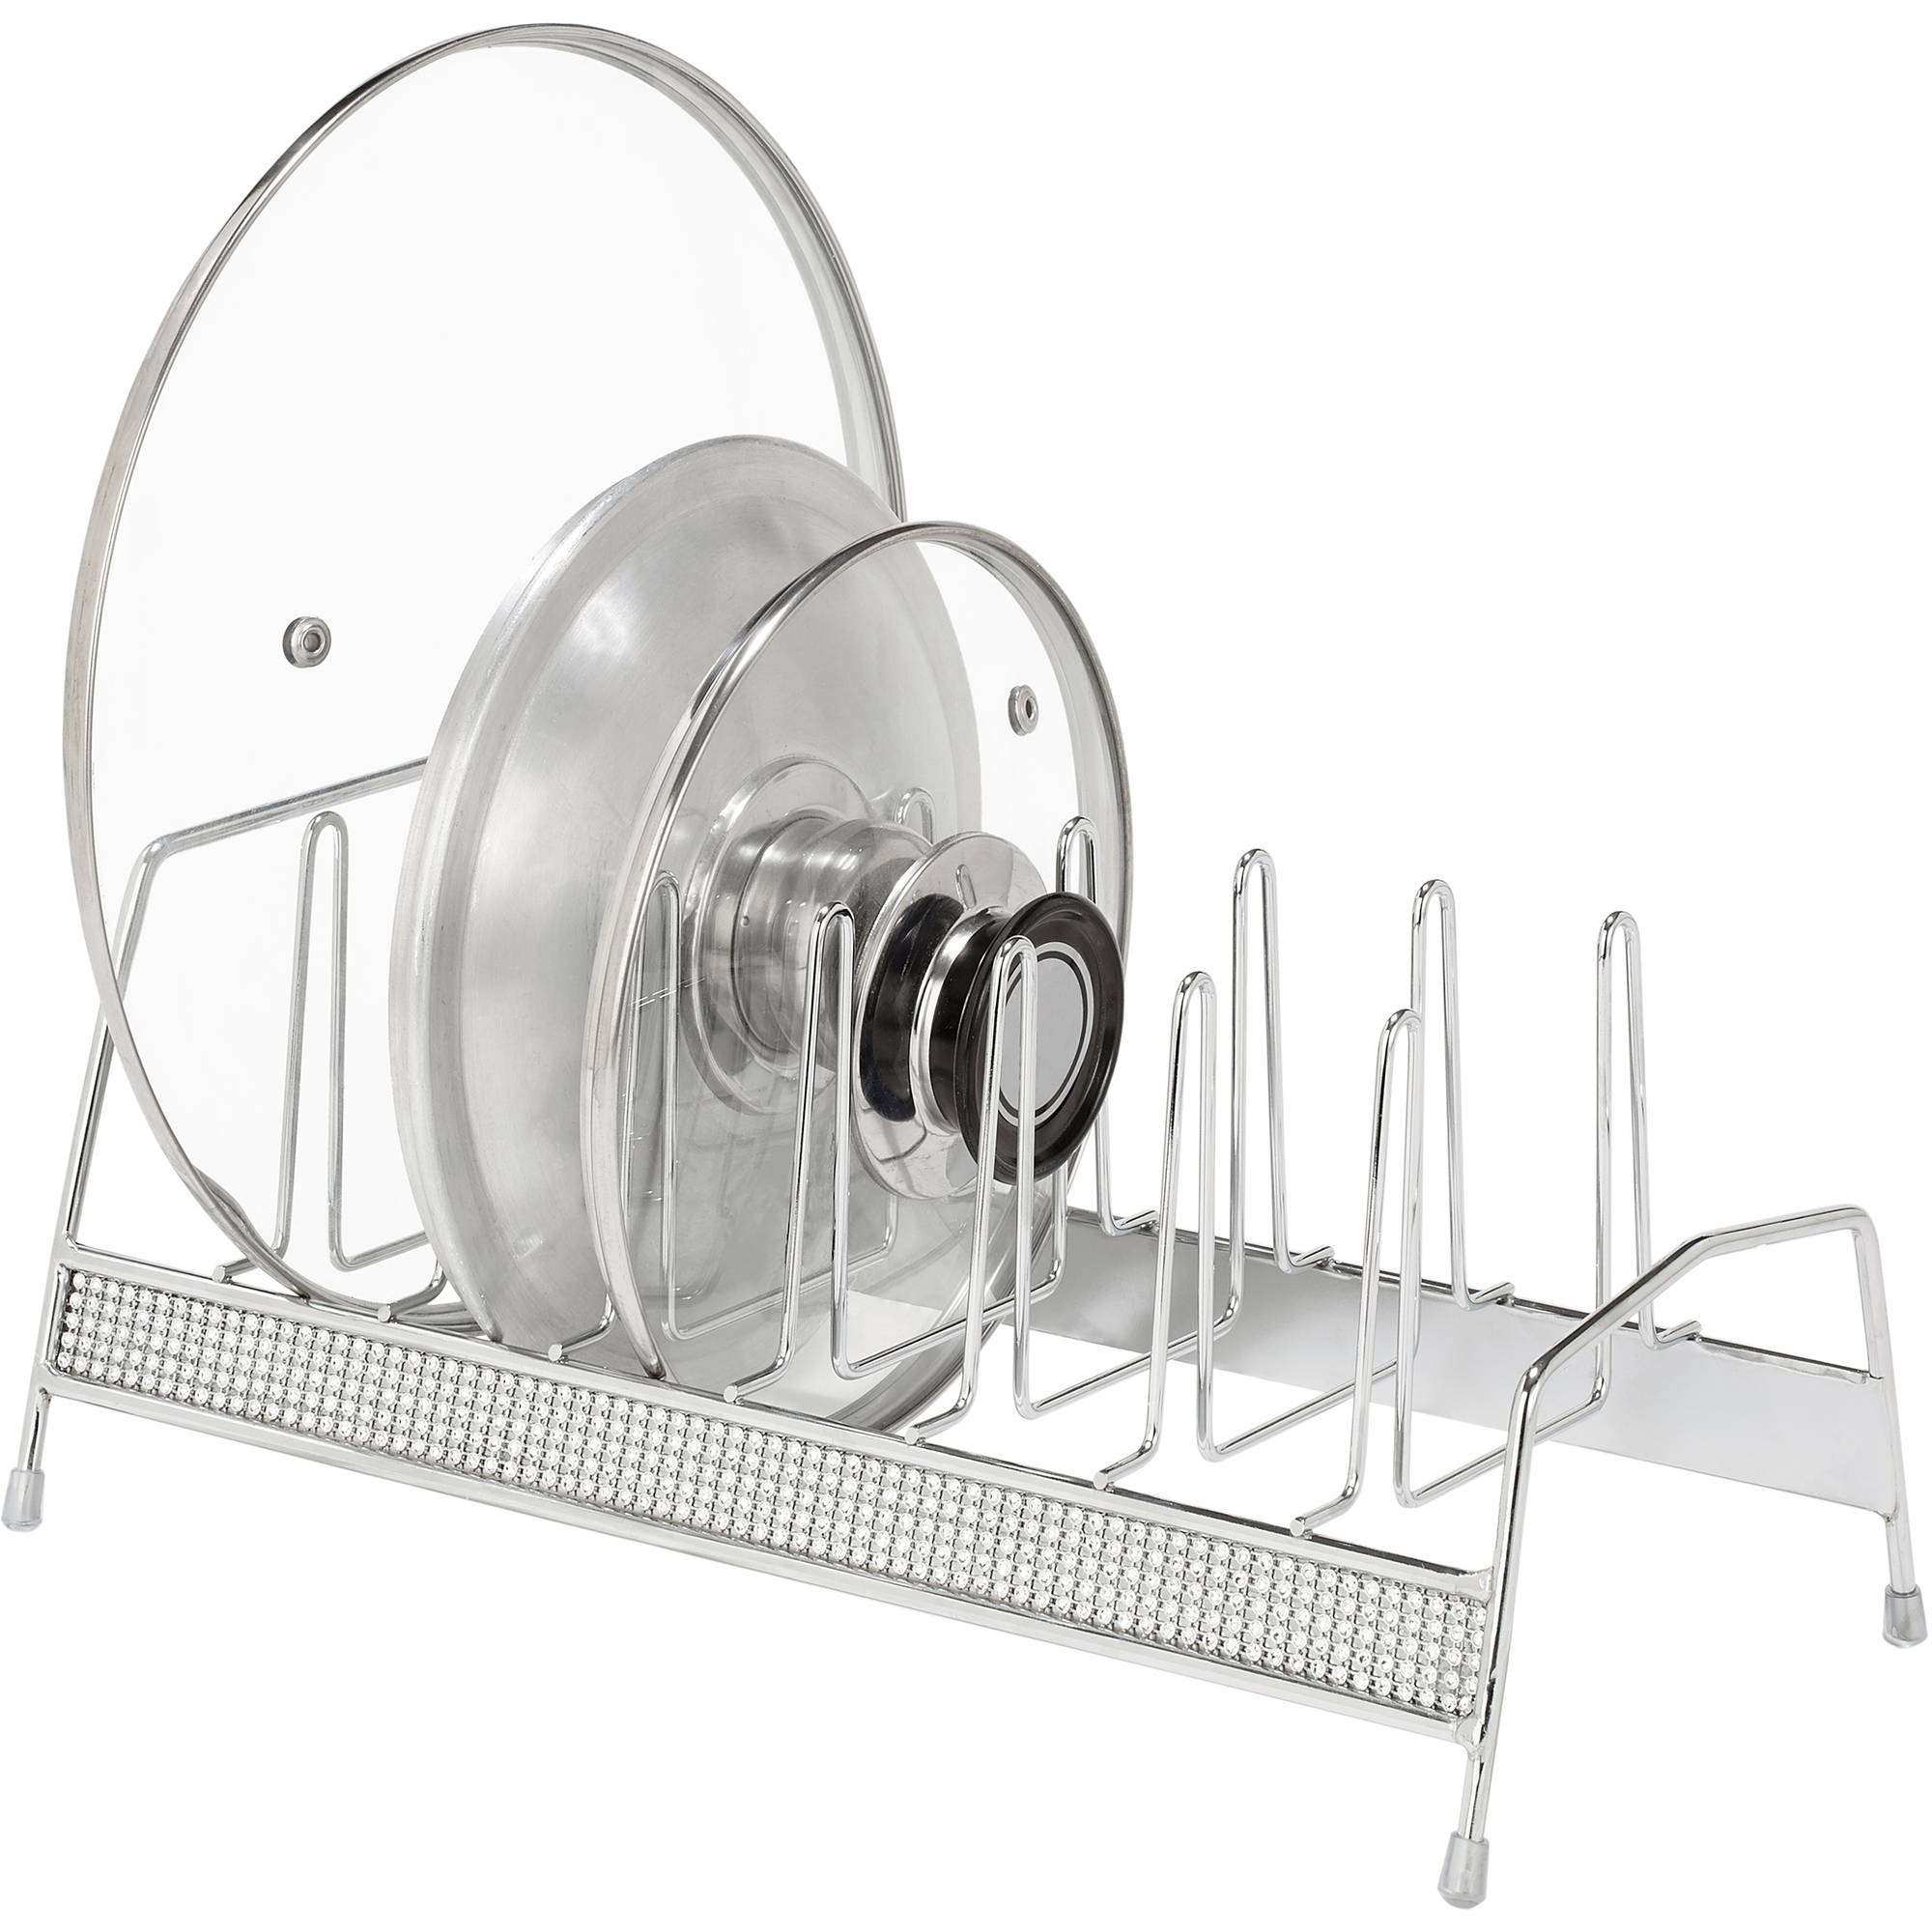 Simplify Lid Organizer, Chrome Pave Diamond Design